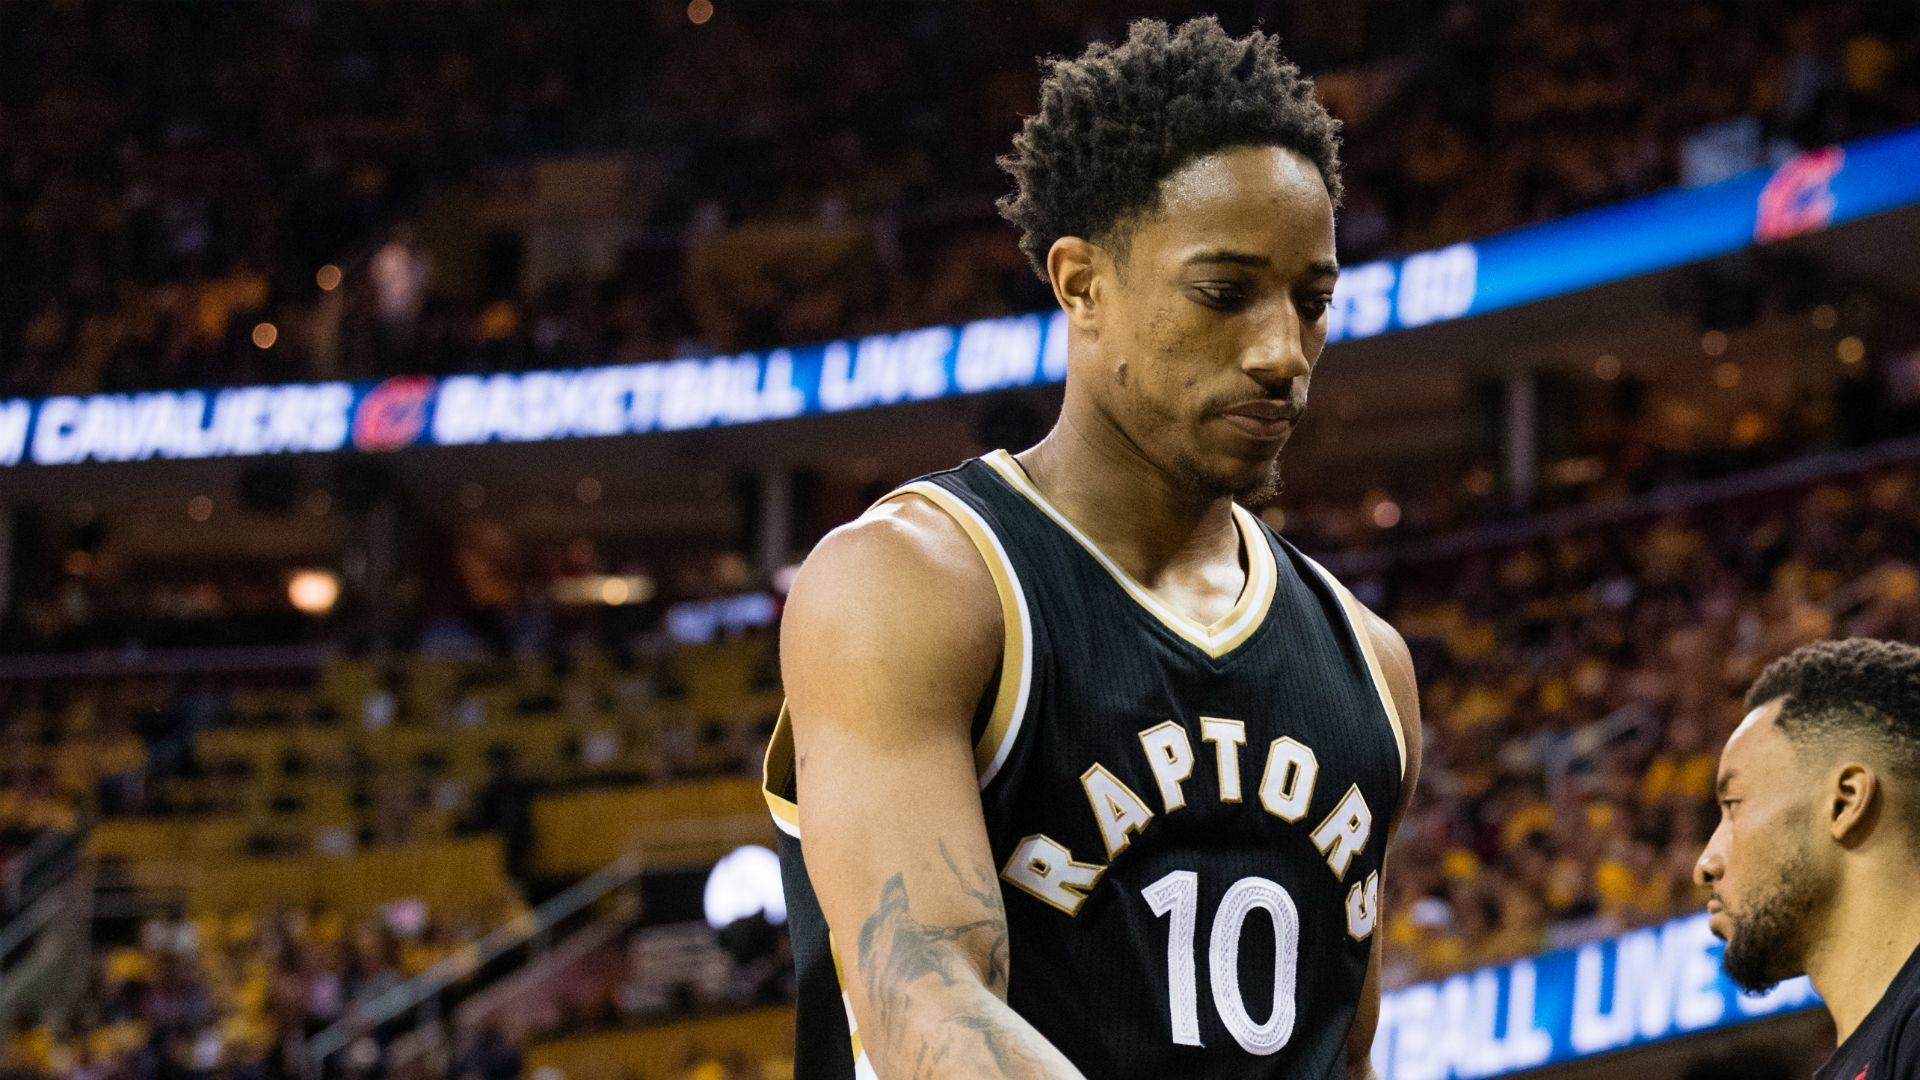 NBA playoffs: DeMar DeRozan is offering a cash reward to stop